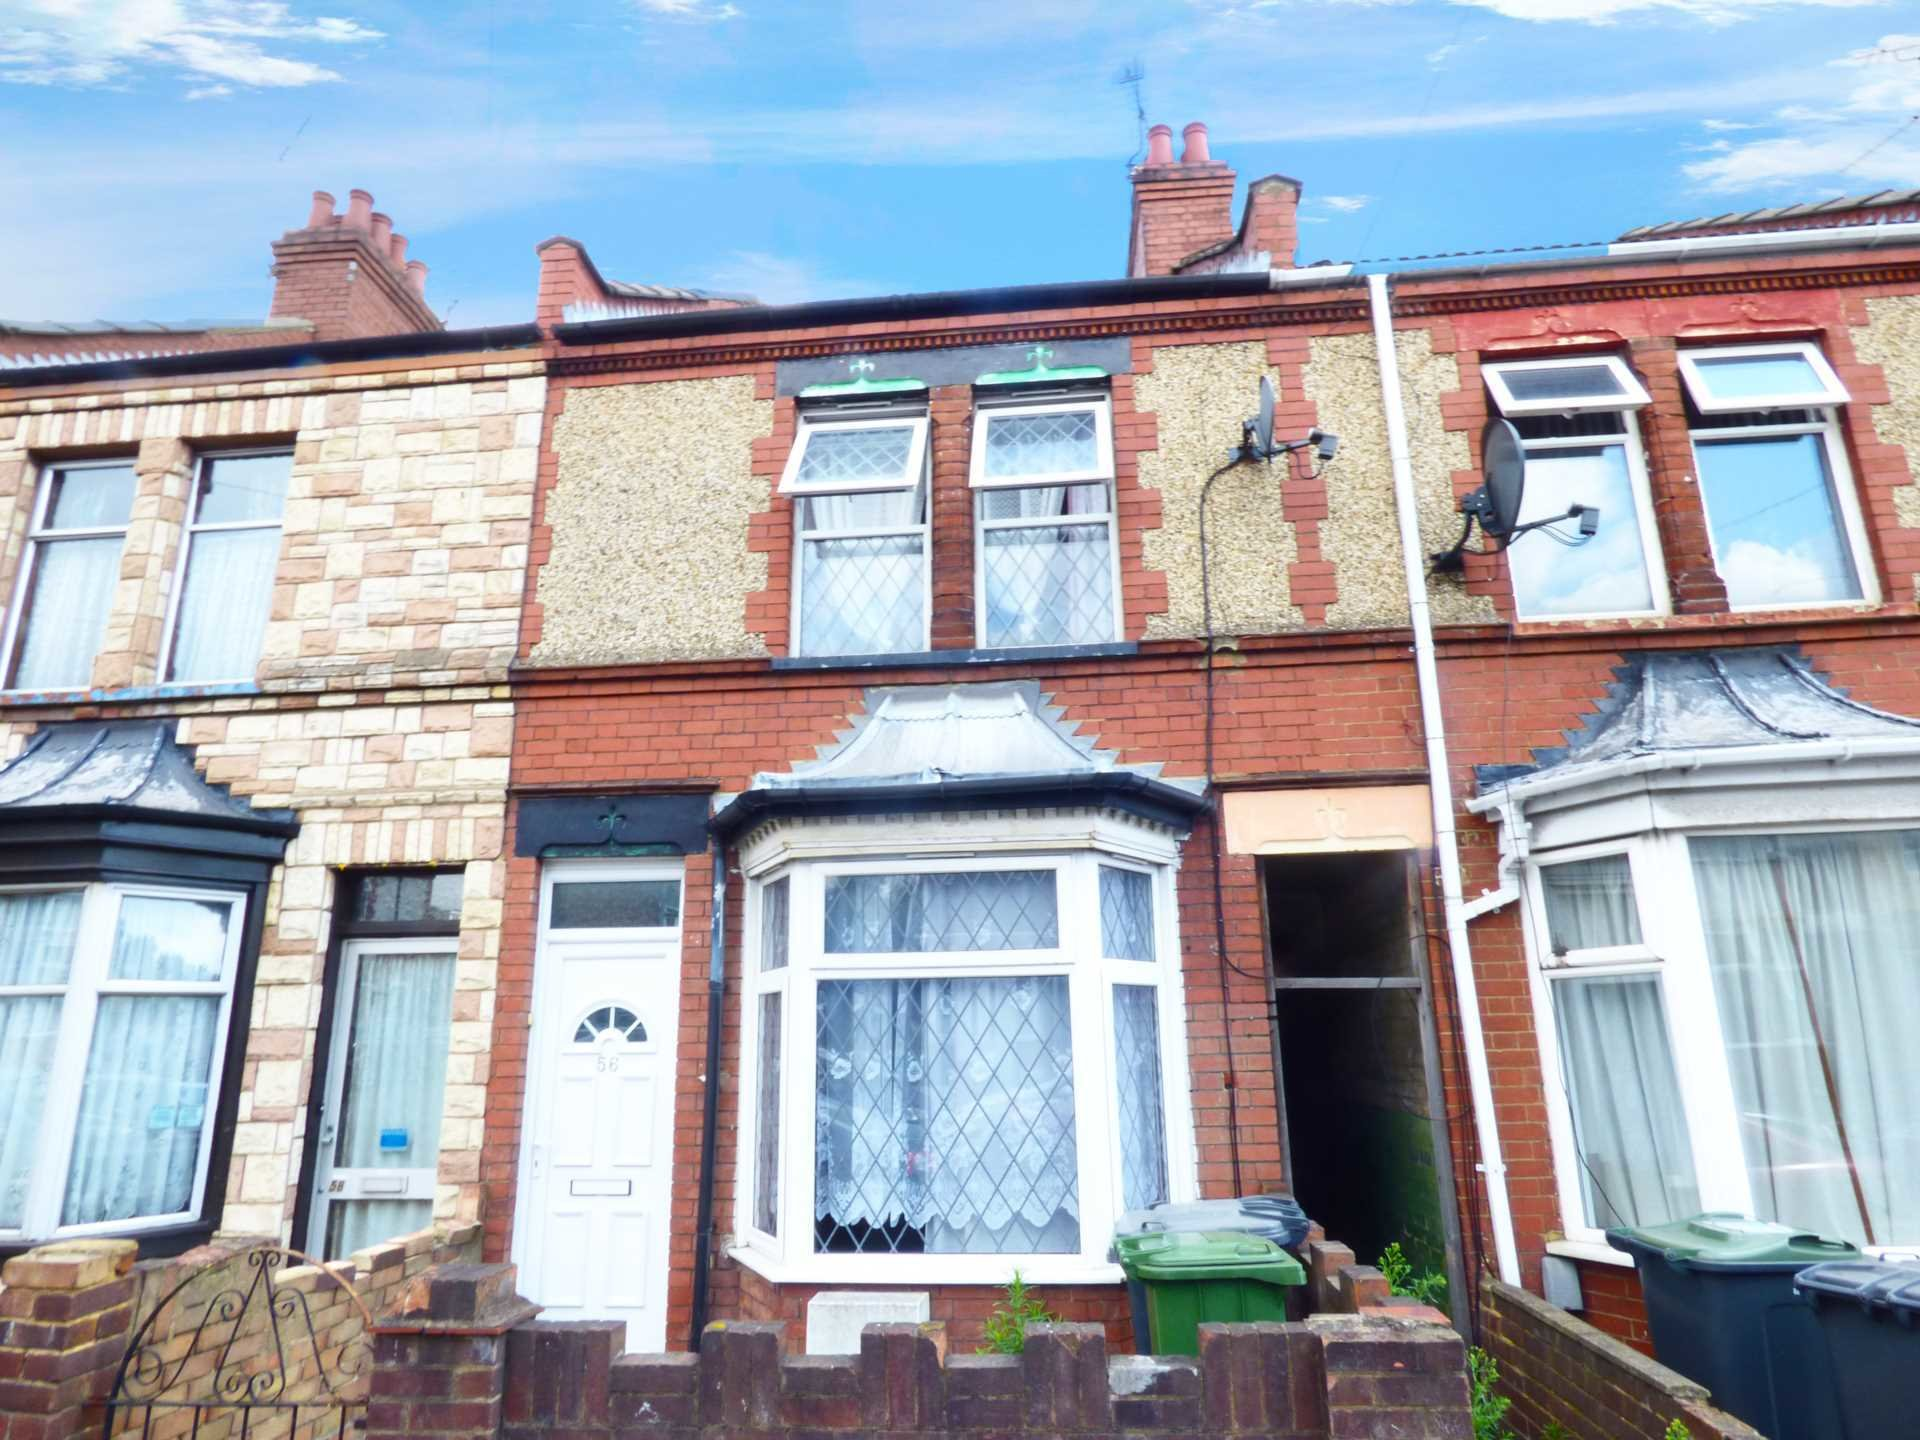 Best 2 Bedroom Terraced House For Sale Selbourne Road Luton Lu4 8Lp – Thehouseshop Com With Pictures